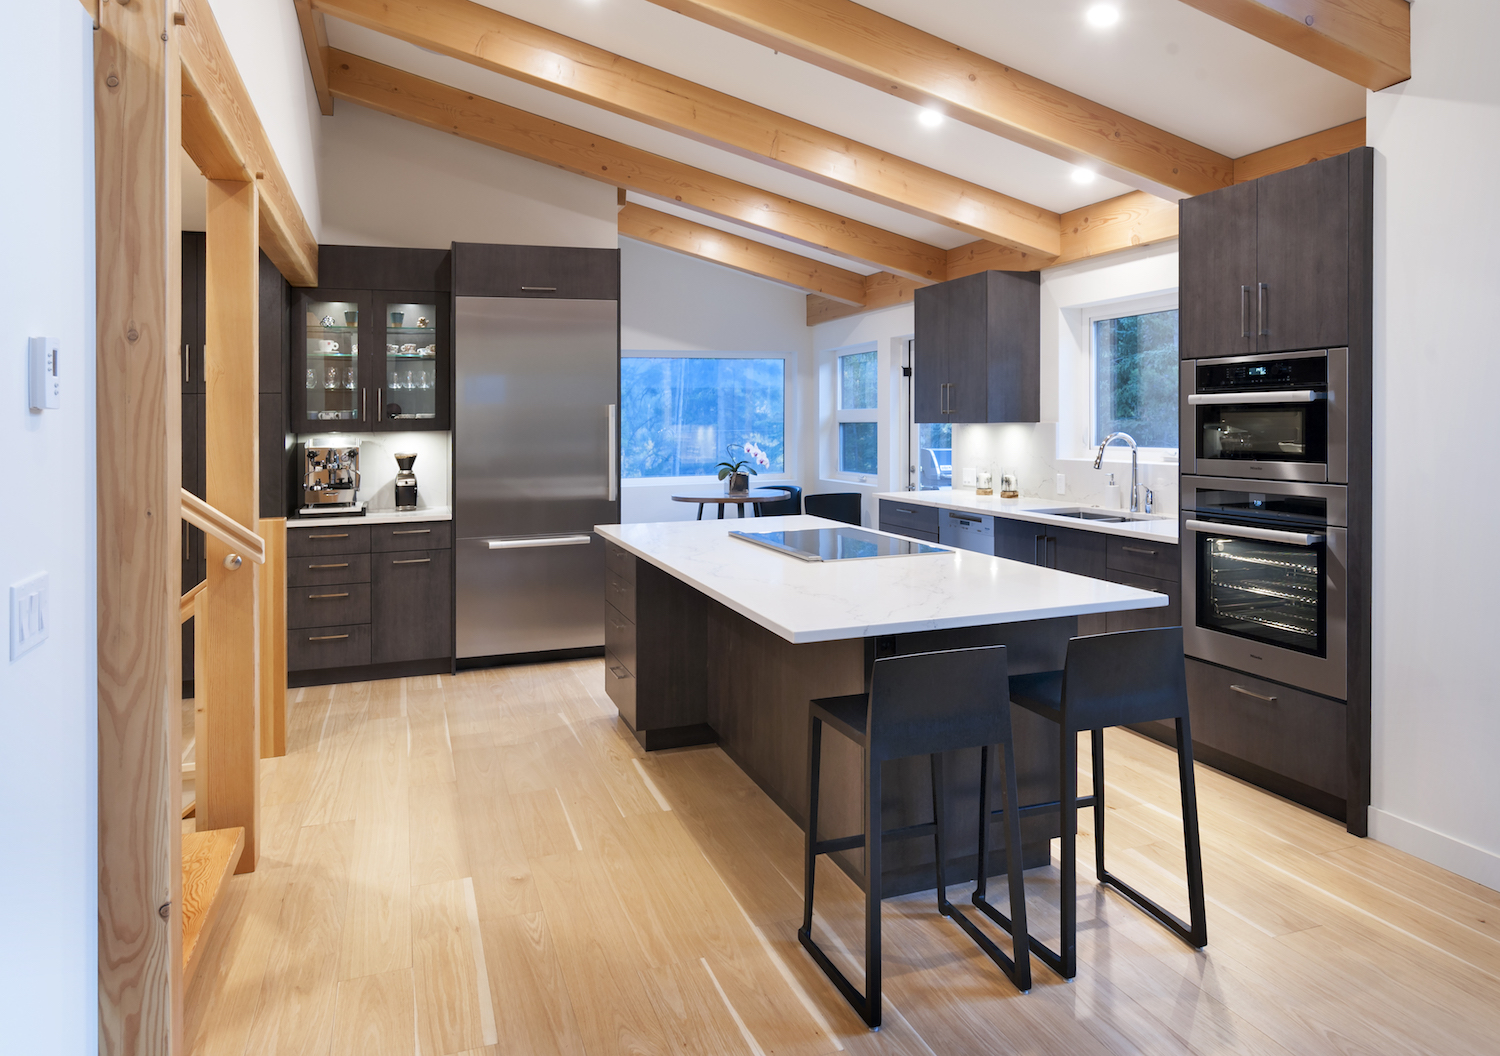 & Custom Kitchen Cabinet Gallery In Calgary u0026 Canmore AB